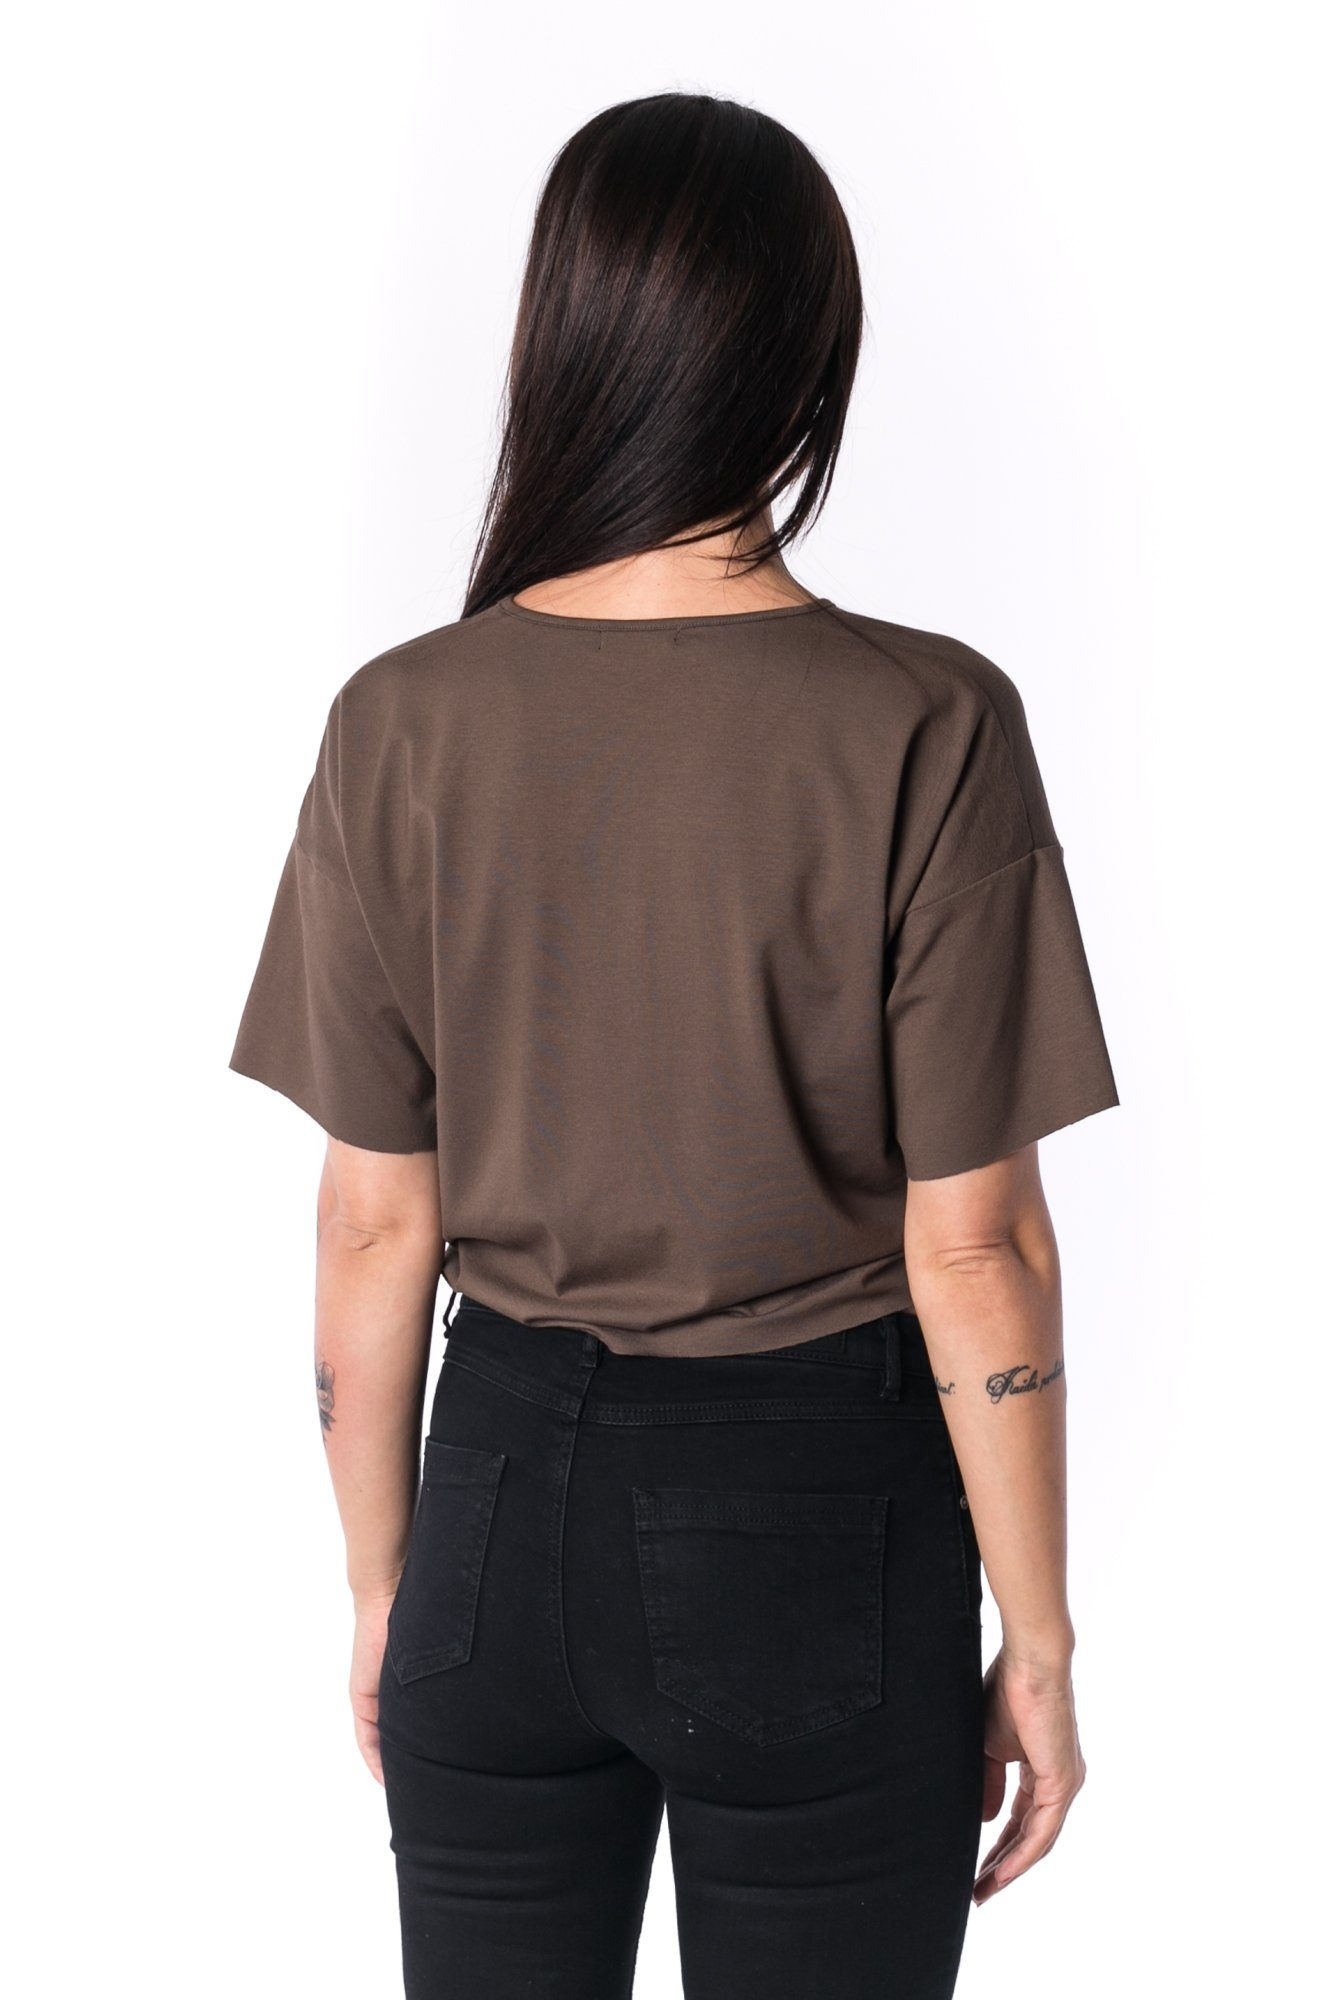 TheG Woman Panelled Oversize Crop V-Neck Tee 17 // firgreen